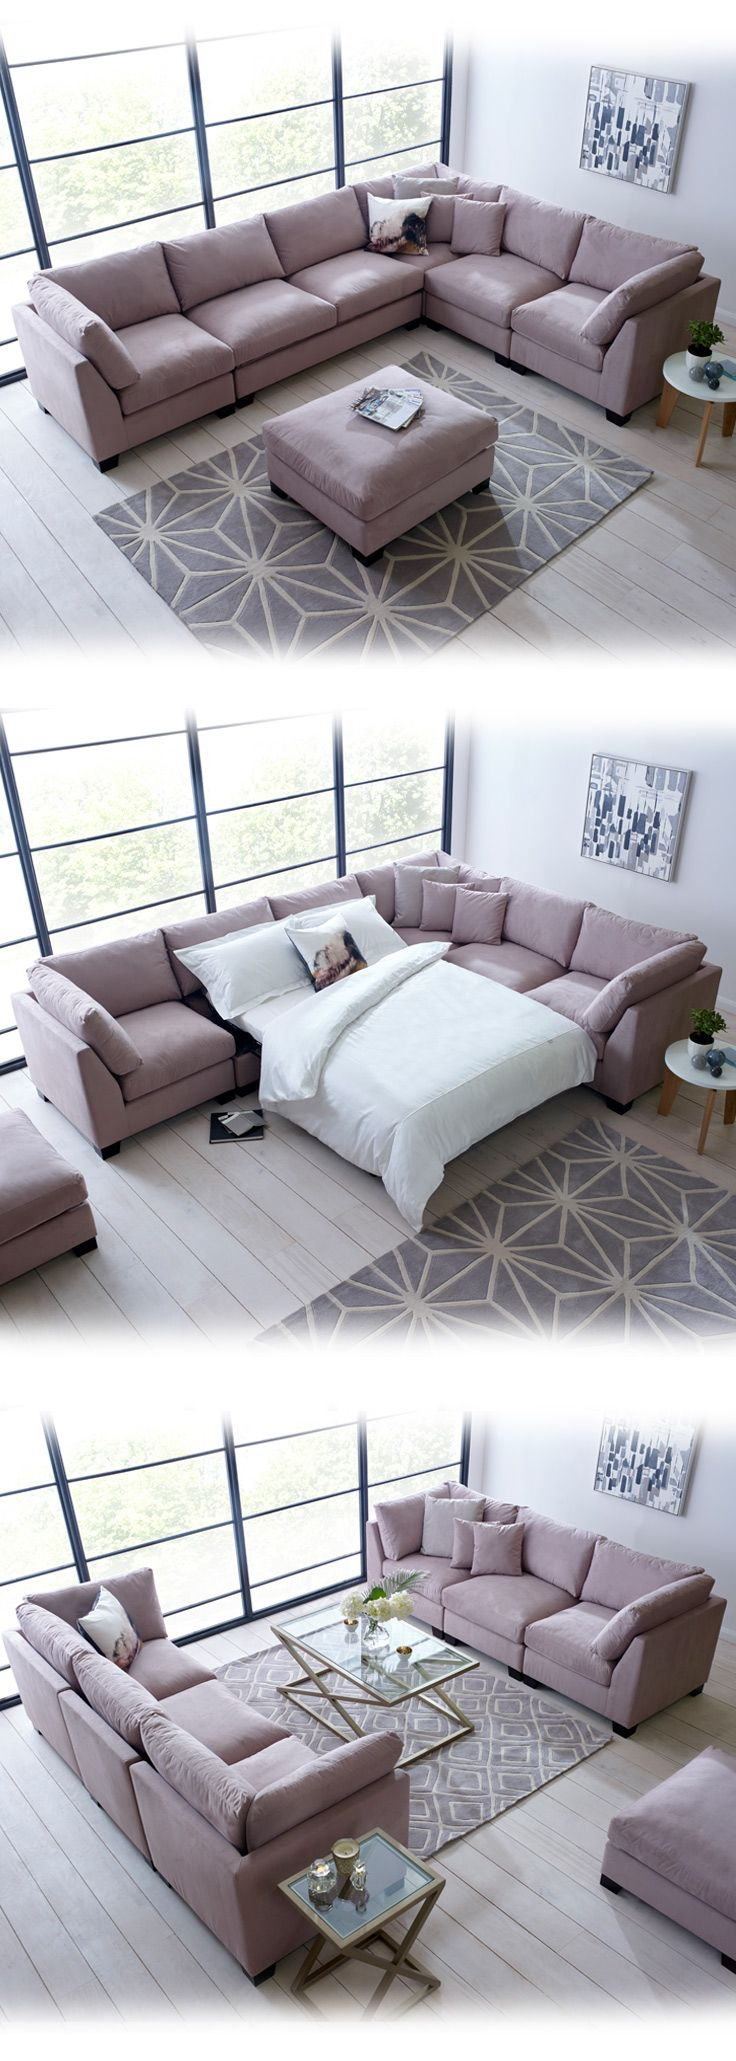 25 Best Ideas About Sofa Beds On Pinterest Sofa With